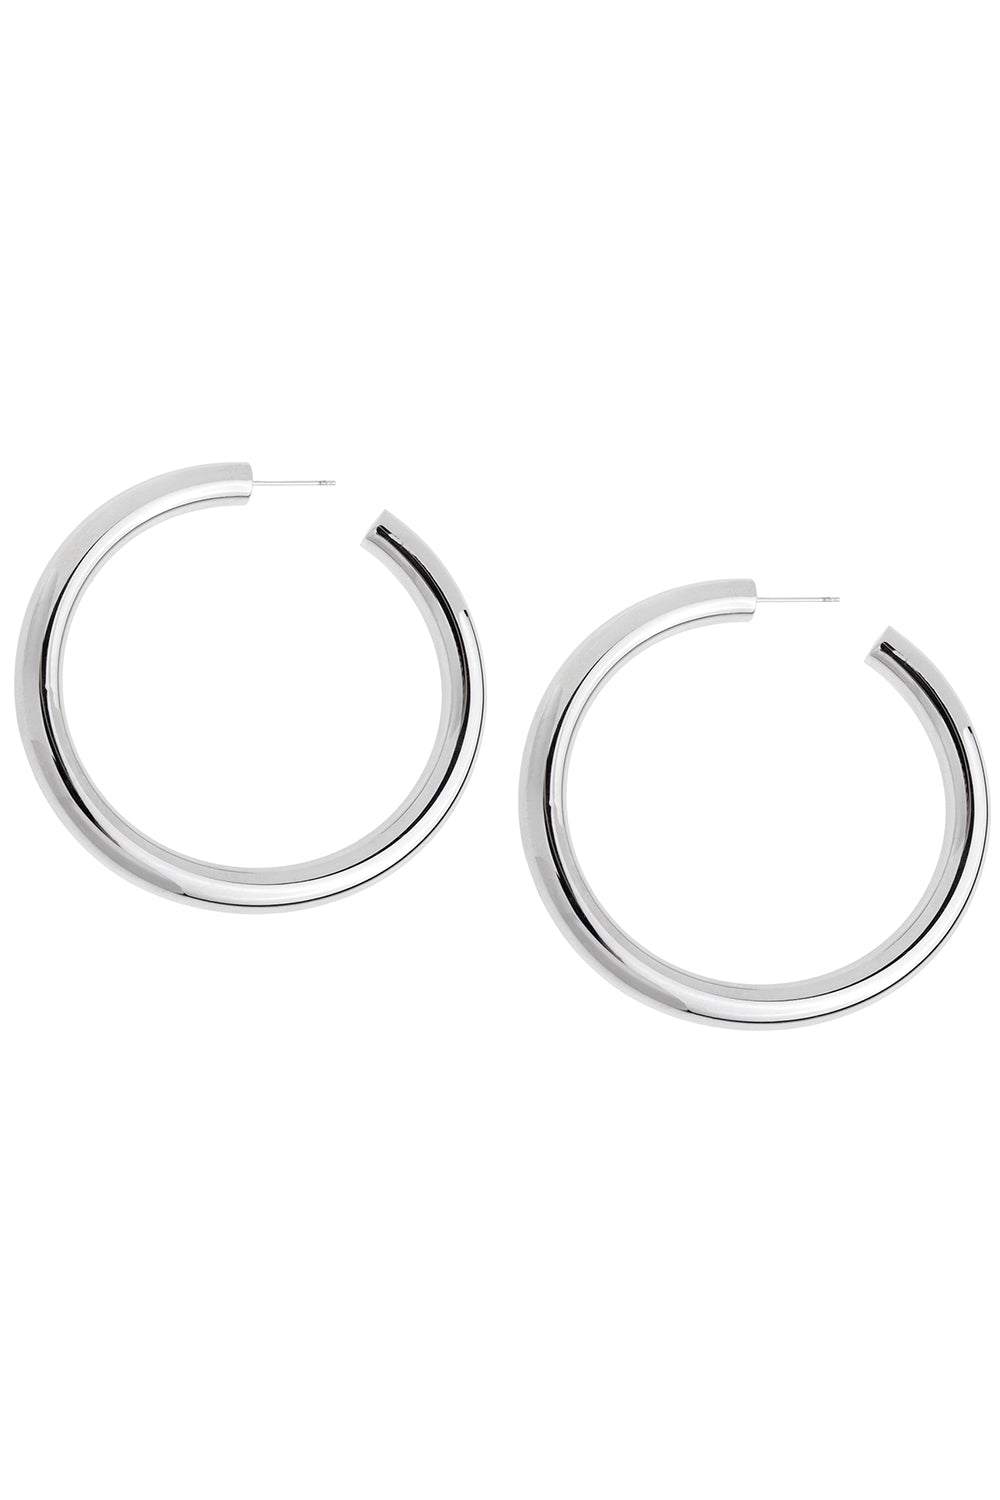 Dreamer Hoop in White Gold